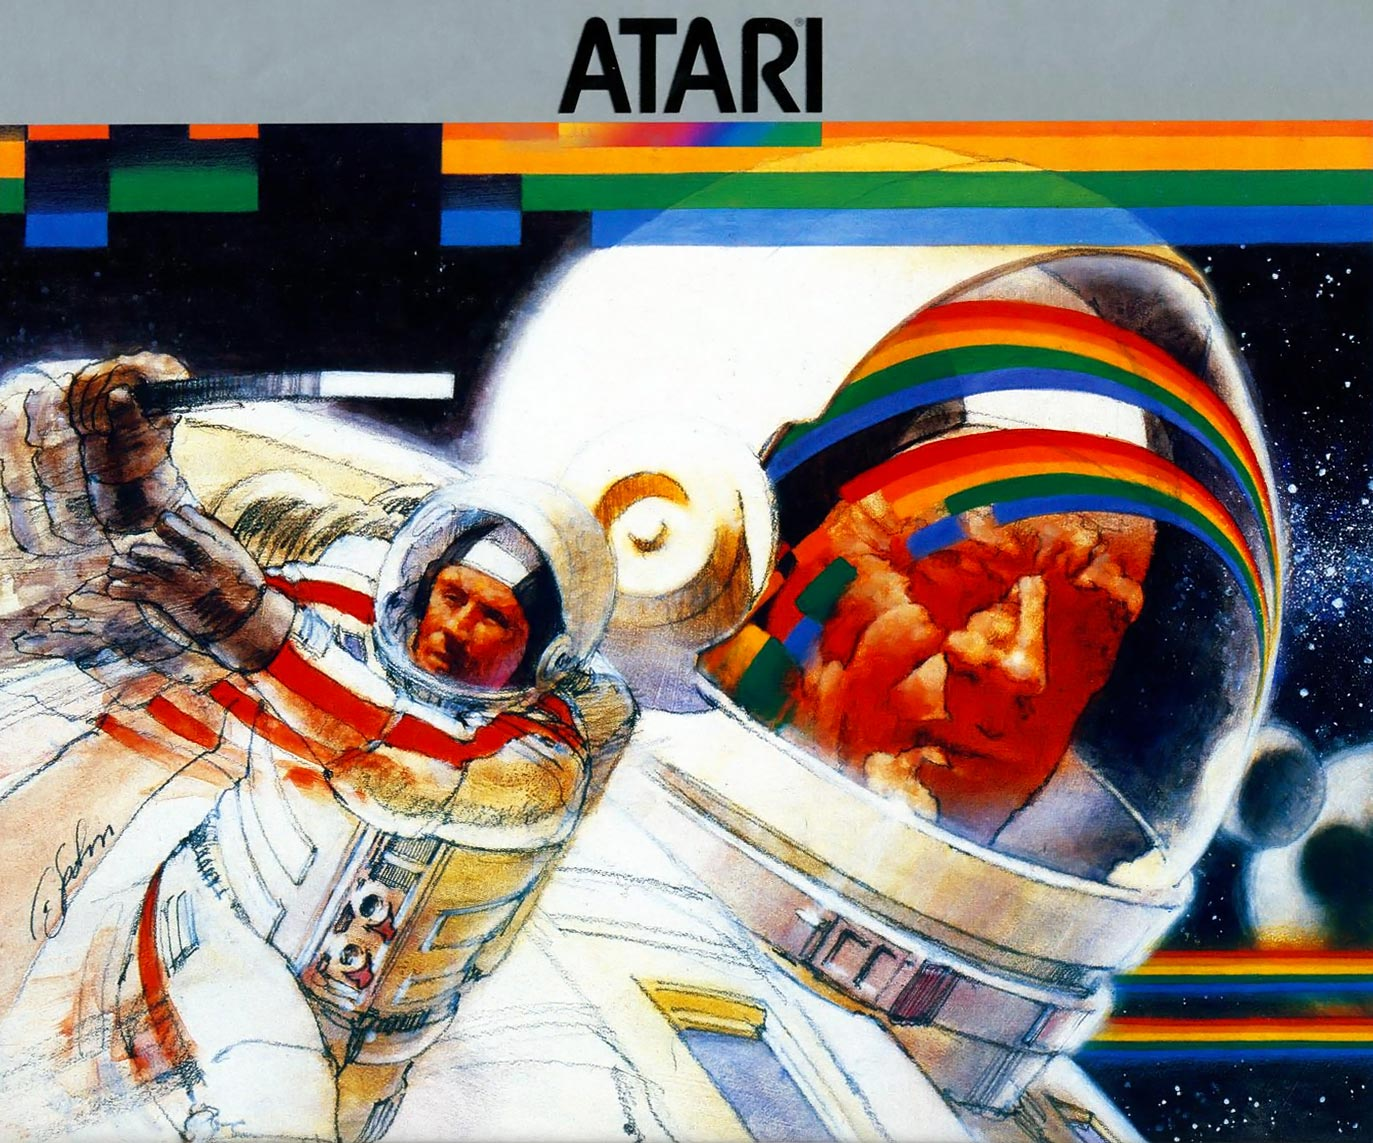 Art for Super Breakout, a video game for the Atari 2600